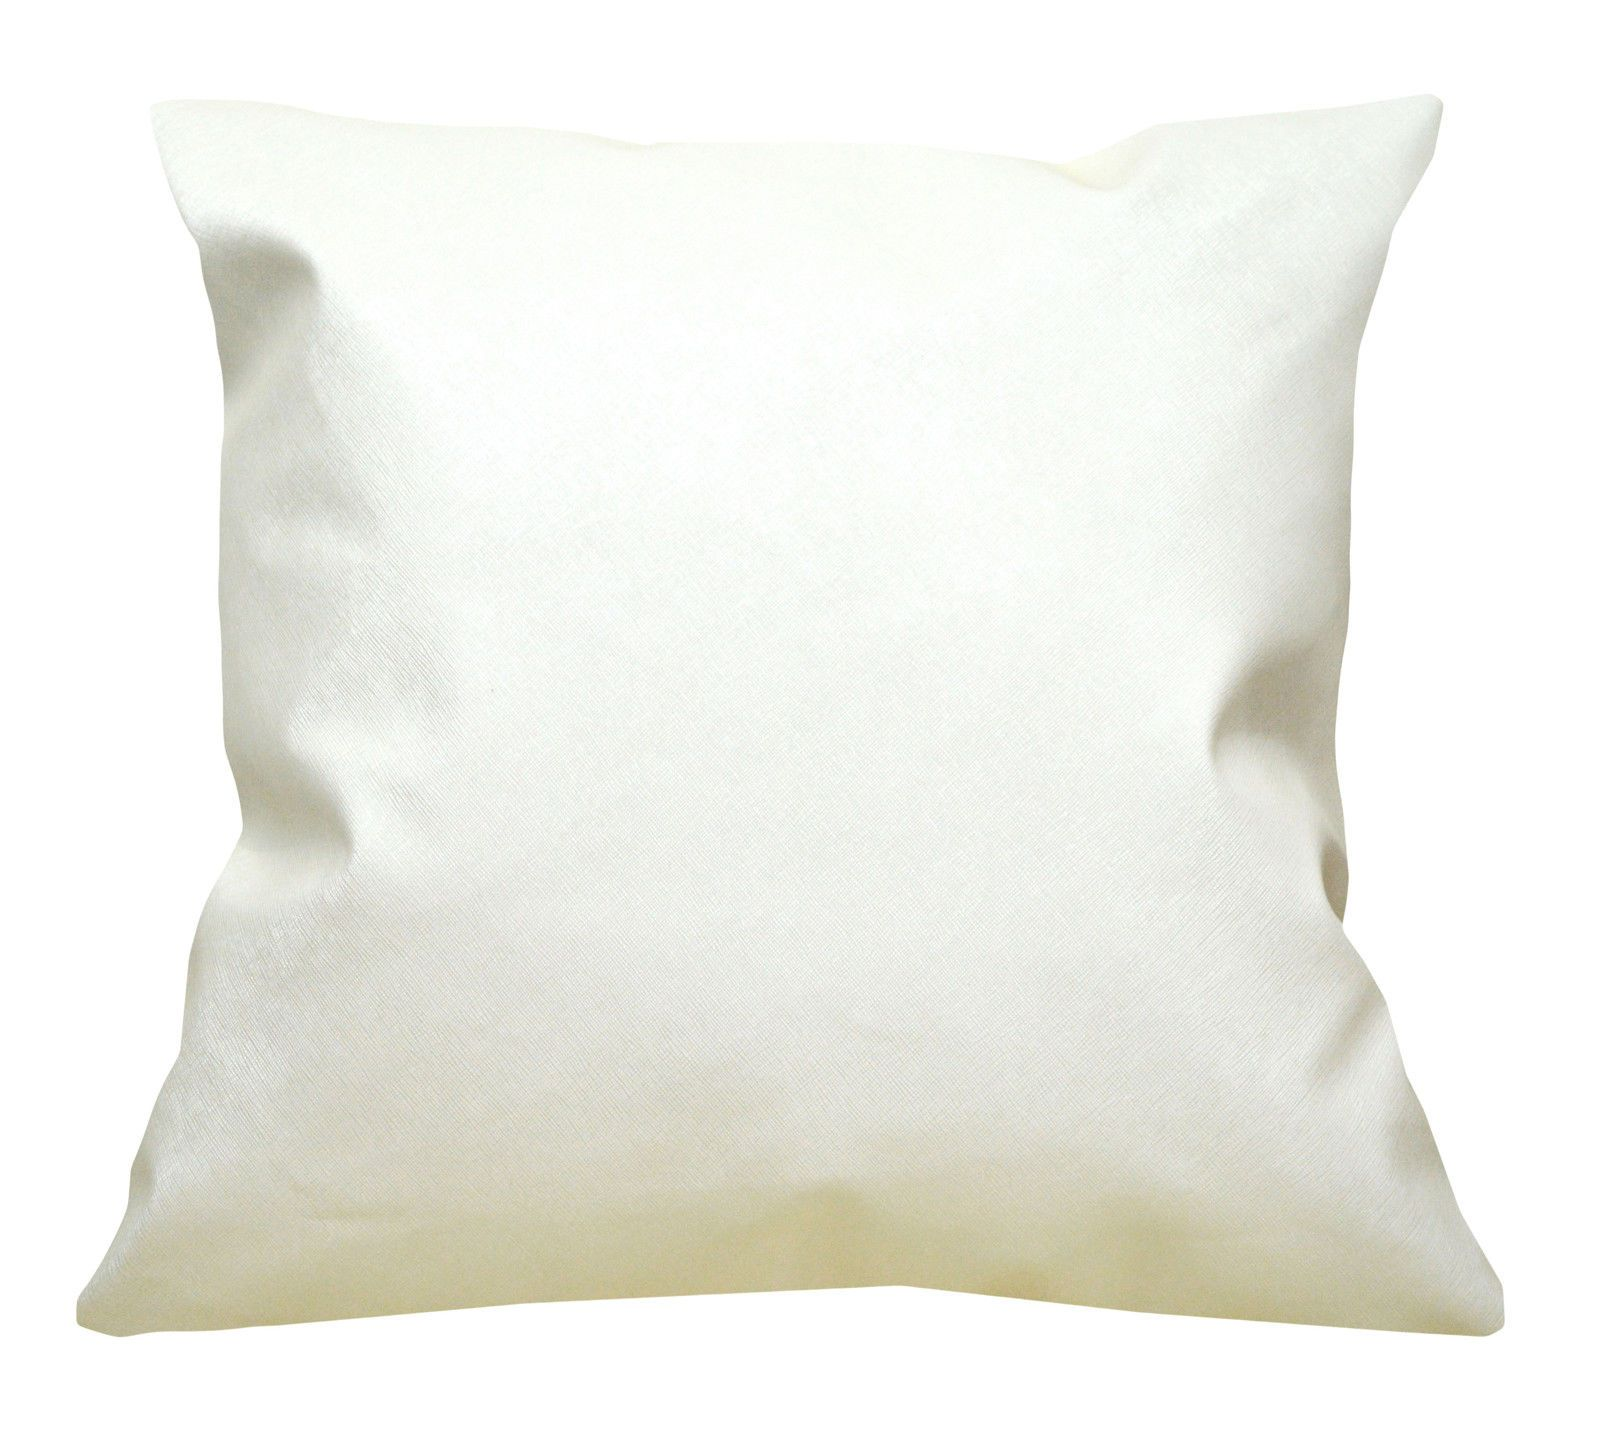 Pc503a Pearl Cream Faux Leather Cross Pattern PVC Cushion Cover//Pillow Case